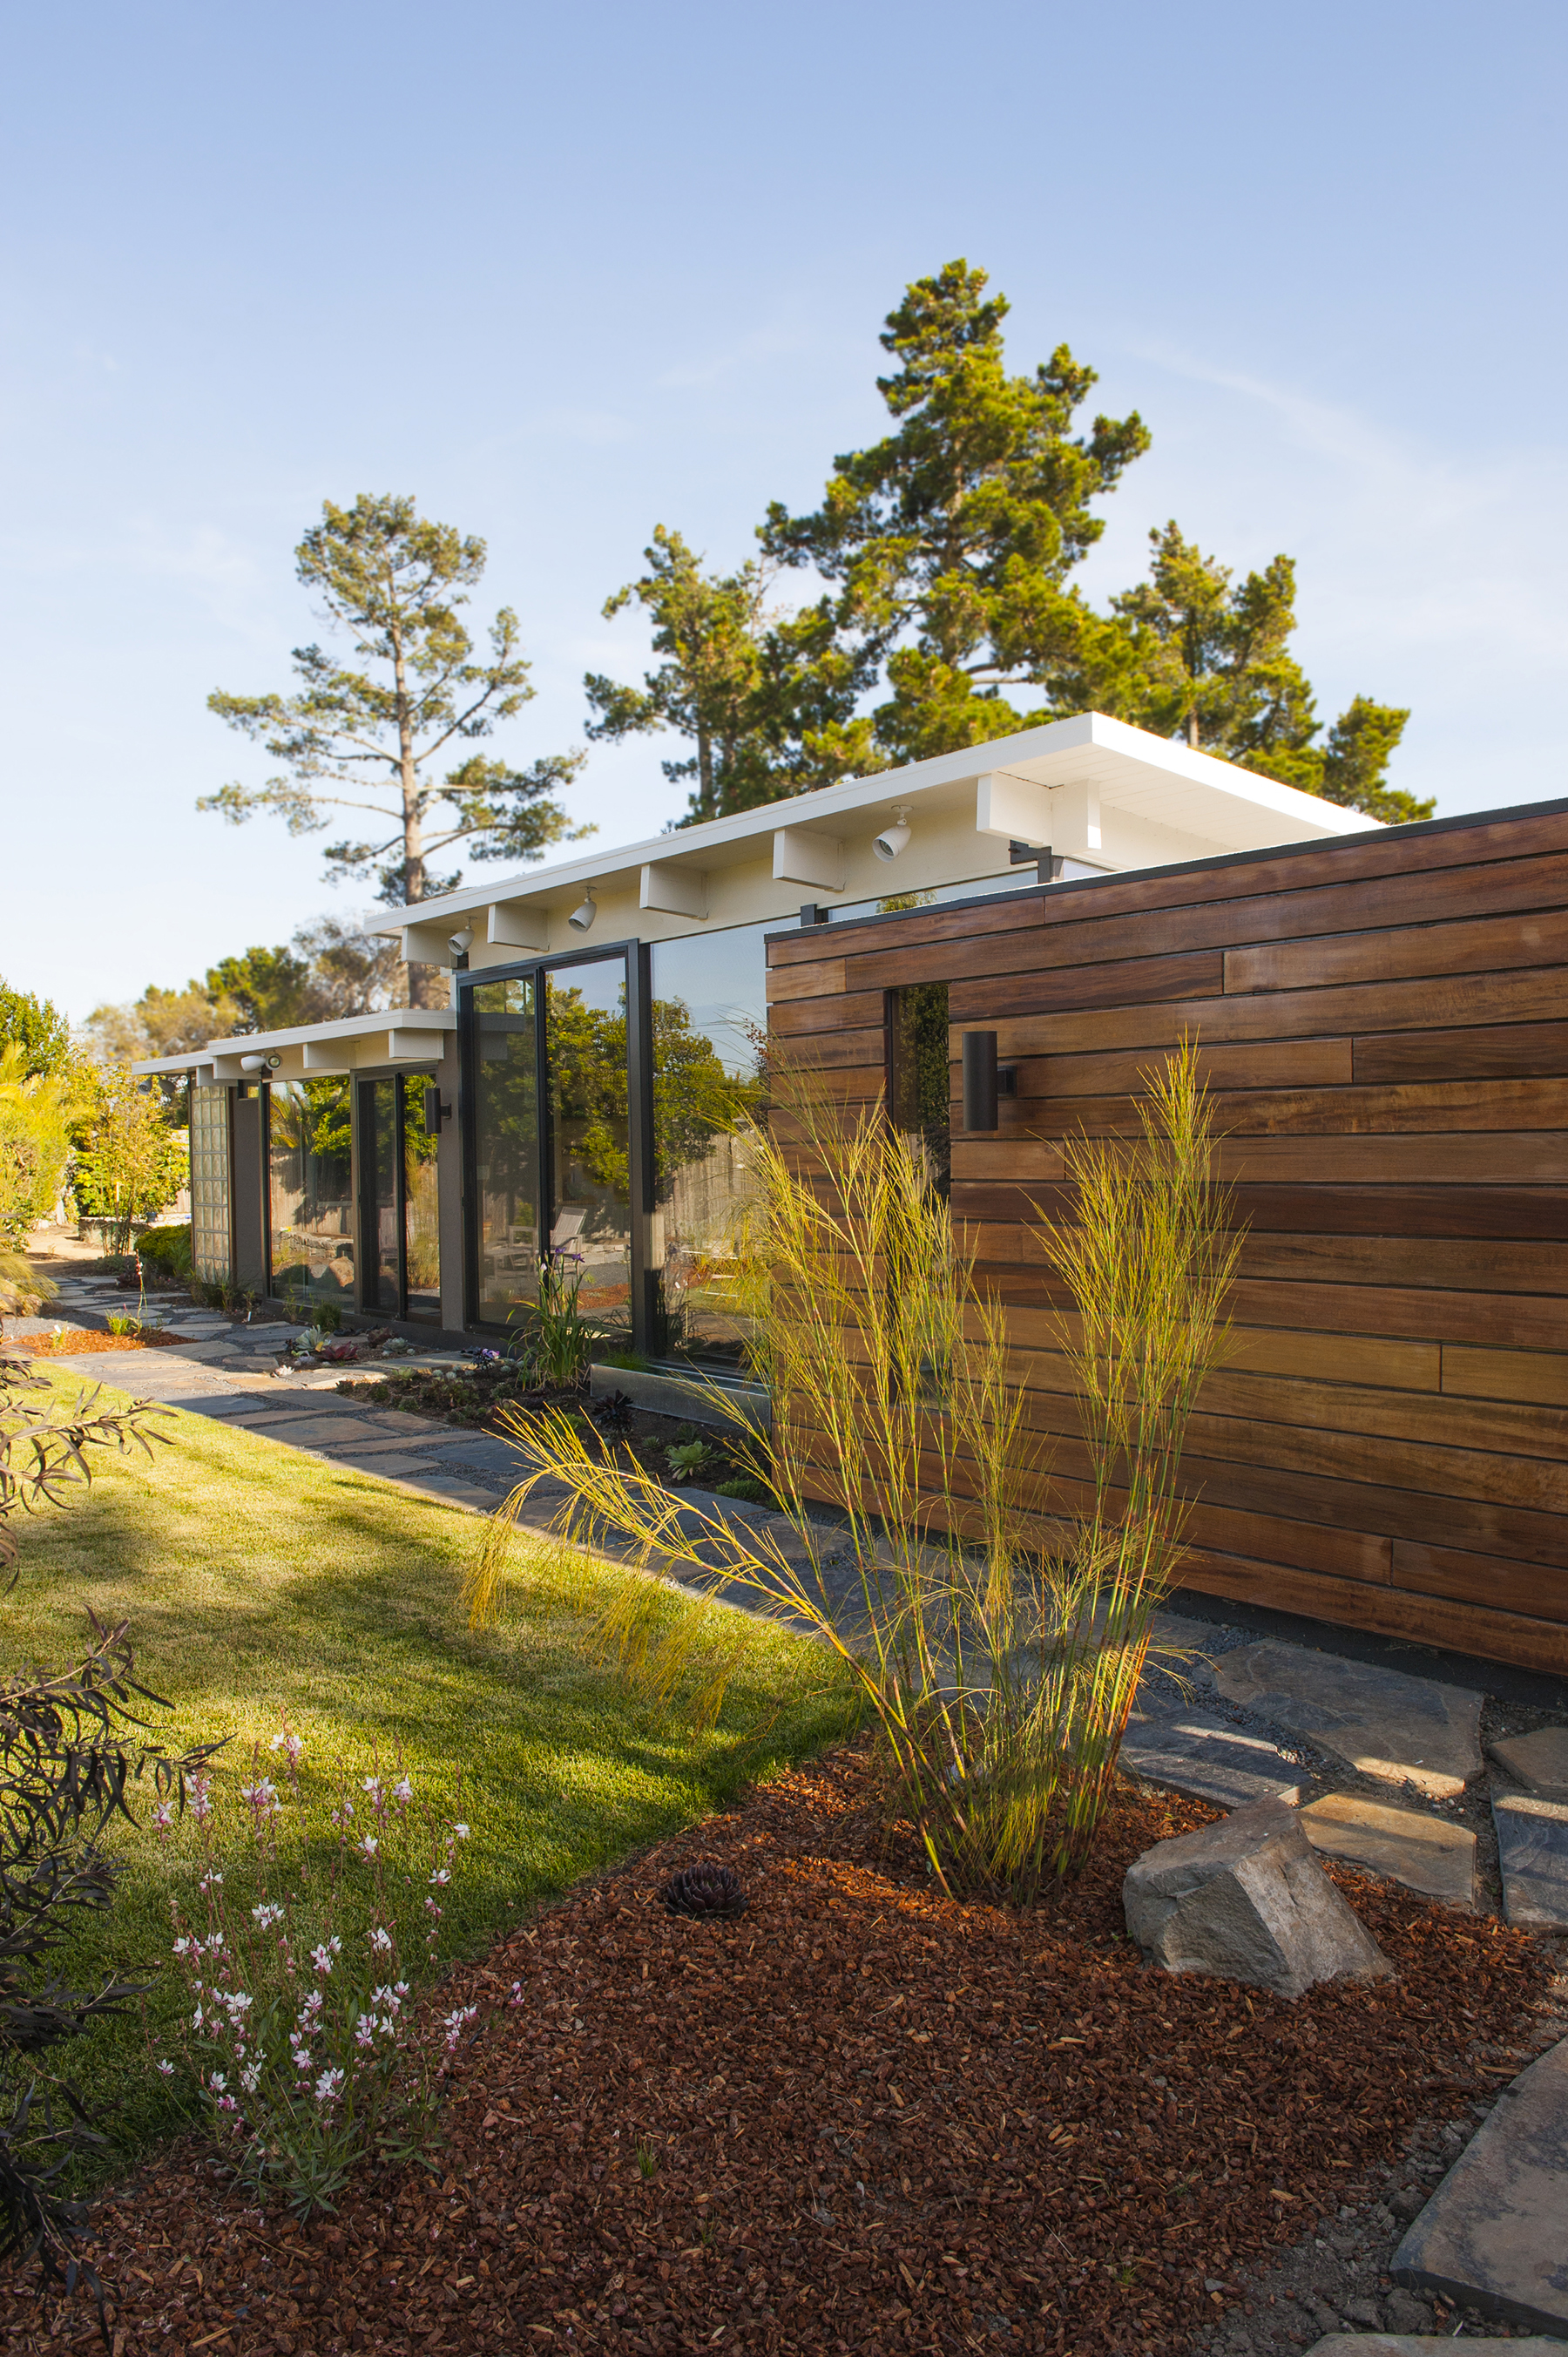 - 40 French Creek, San Mateo Highlands: A complete remodel, clad in wood exterior, custom designed and built furniture, new office addition. Featured on the Eichler Home Tour 2014